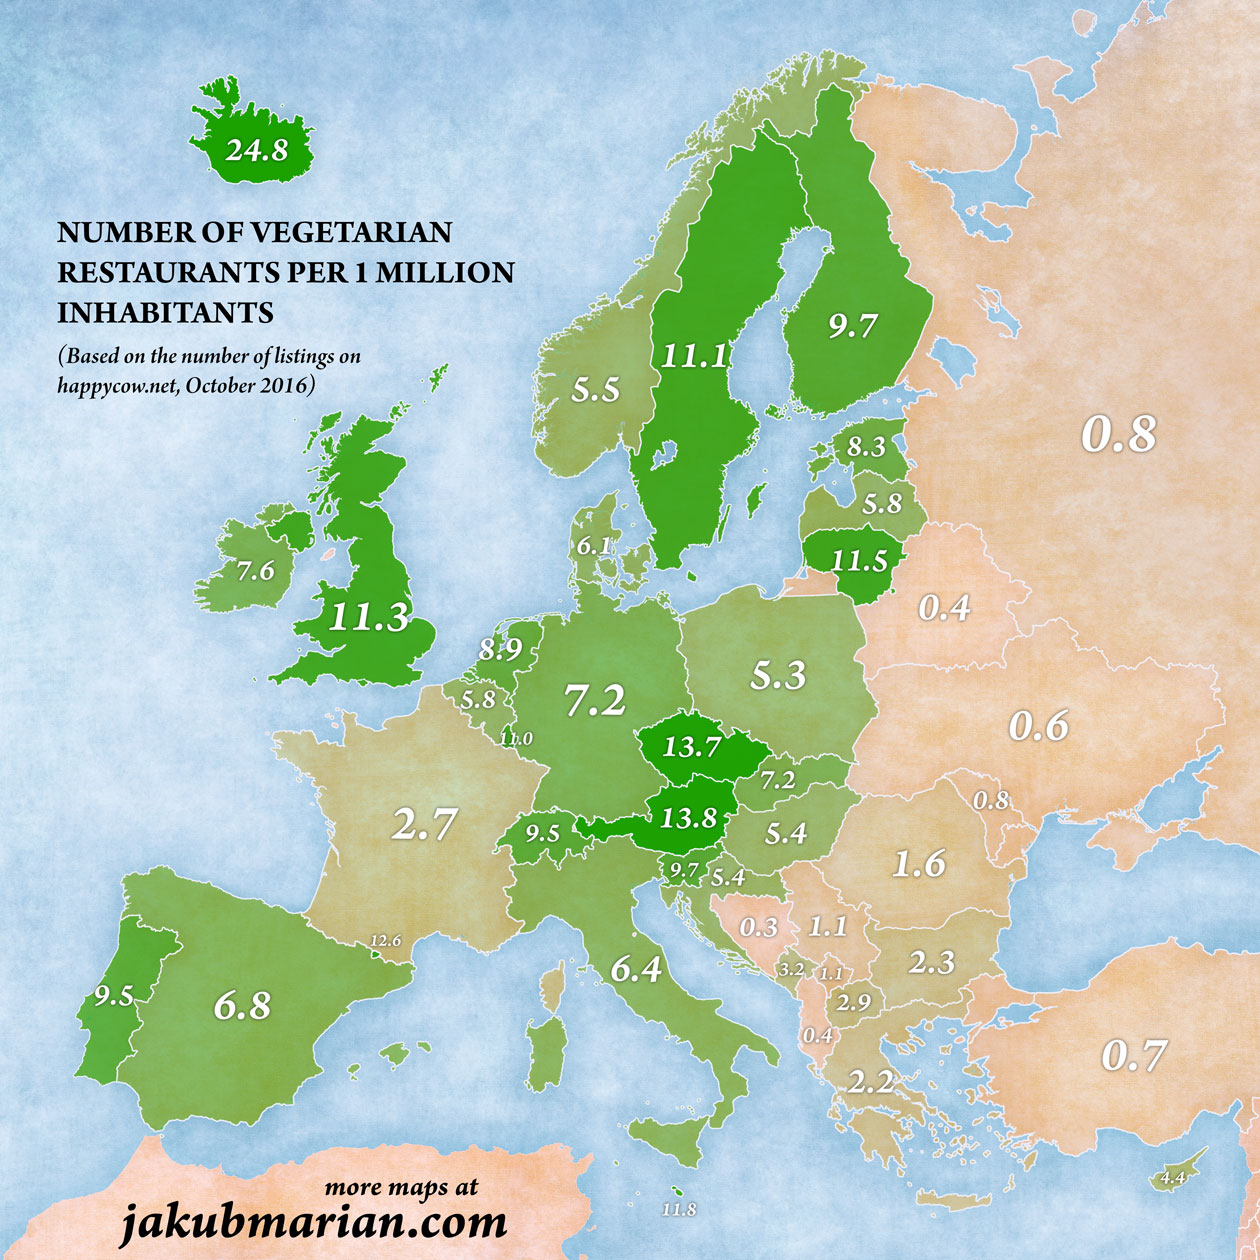 Number of vegetarian restaurants per 1 million inhabitants